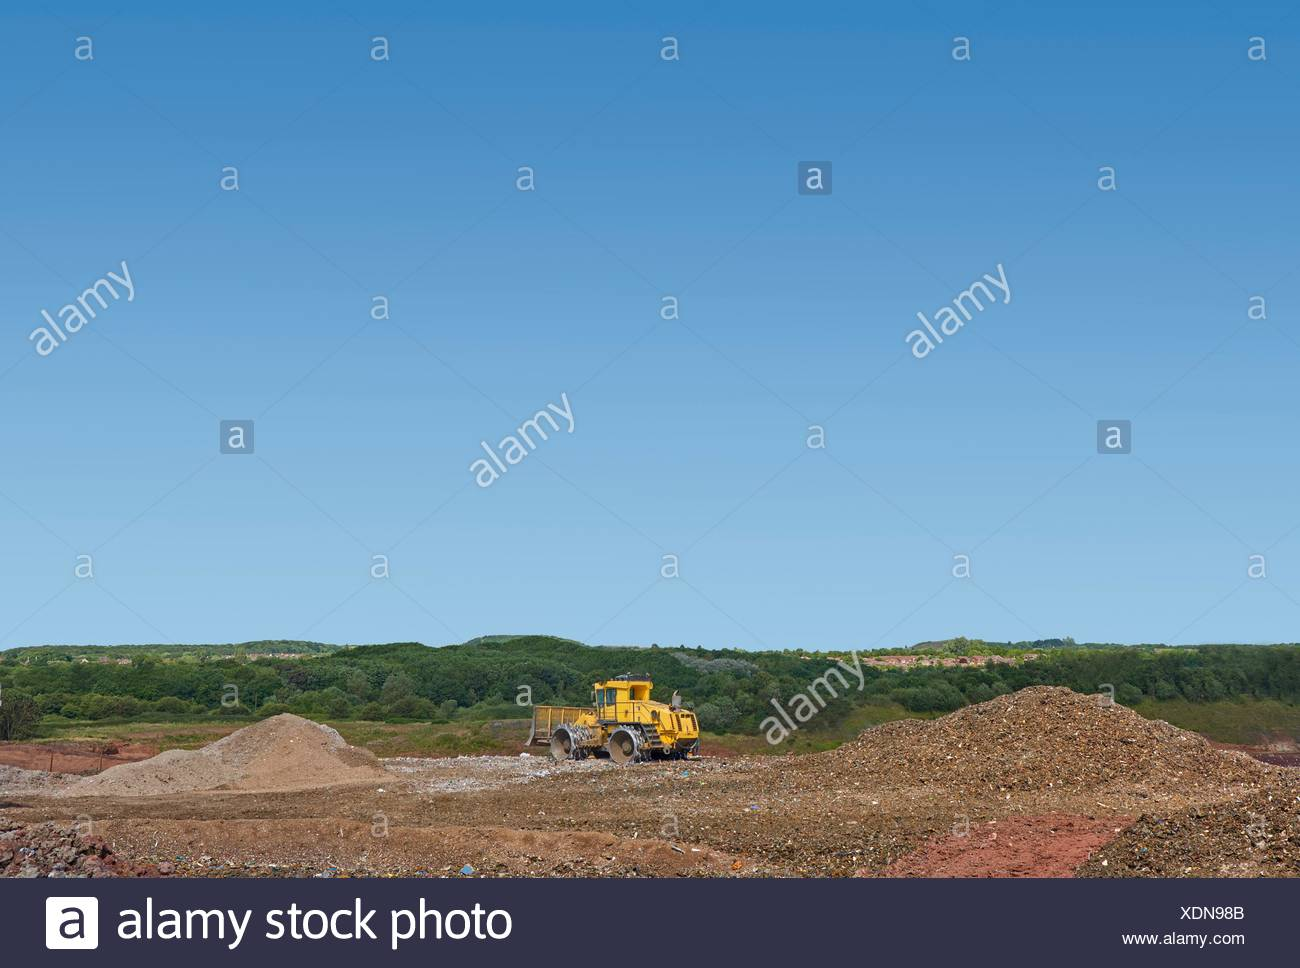 Digger burying waste on landfill site - Stock Image